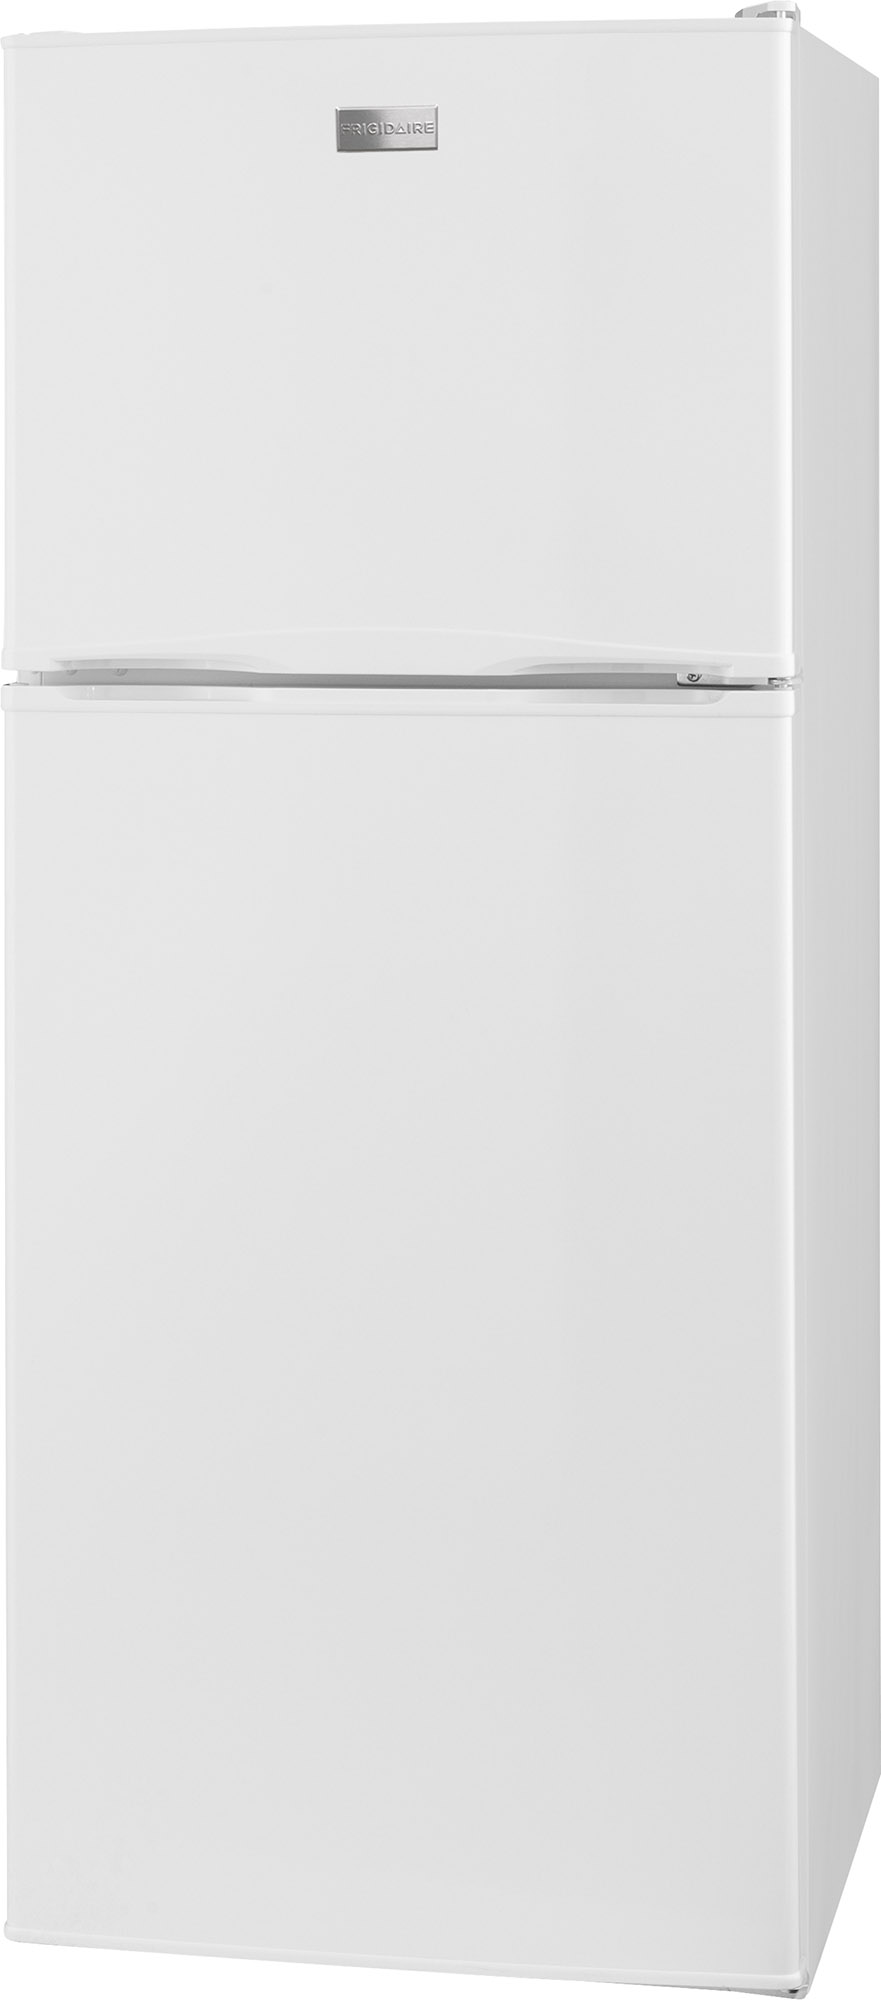 Frigidaire® 9.9 Cu. Ft. Top Freezer Apartment Size Refrigerator ...